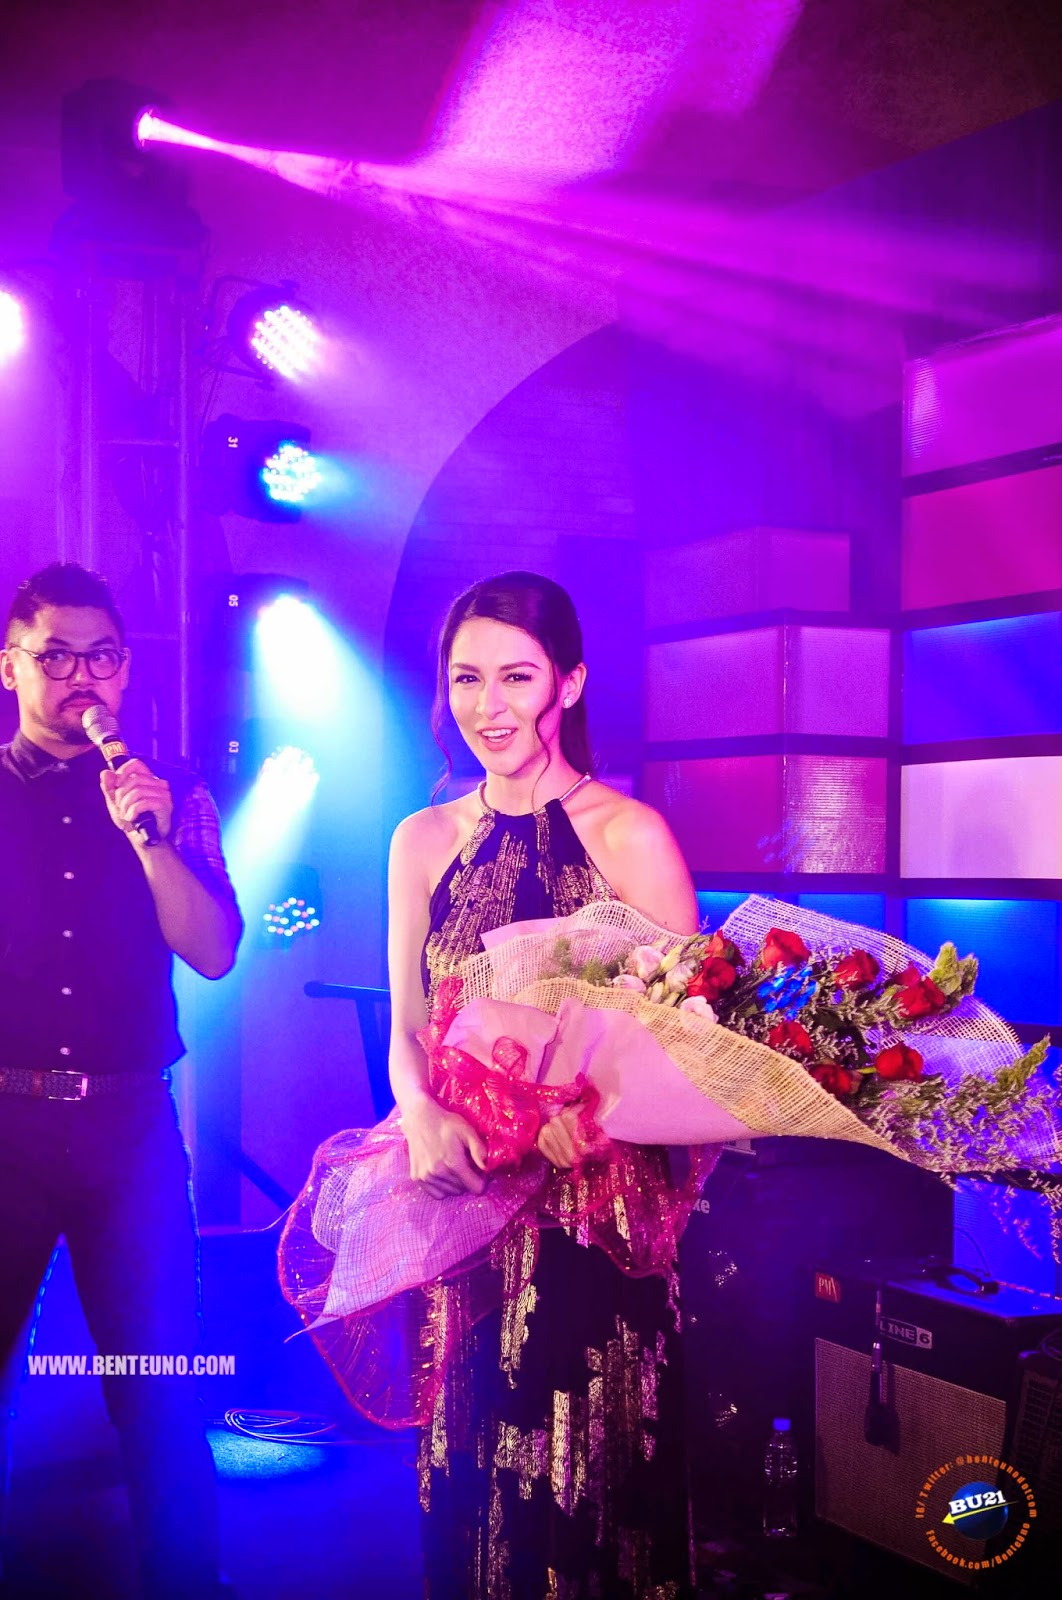 Marian Rivera, announced as Media Magnet of 2014 at the Yahoo Celebrity Awards